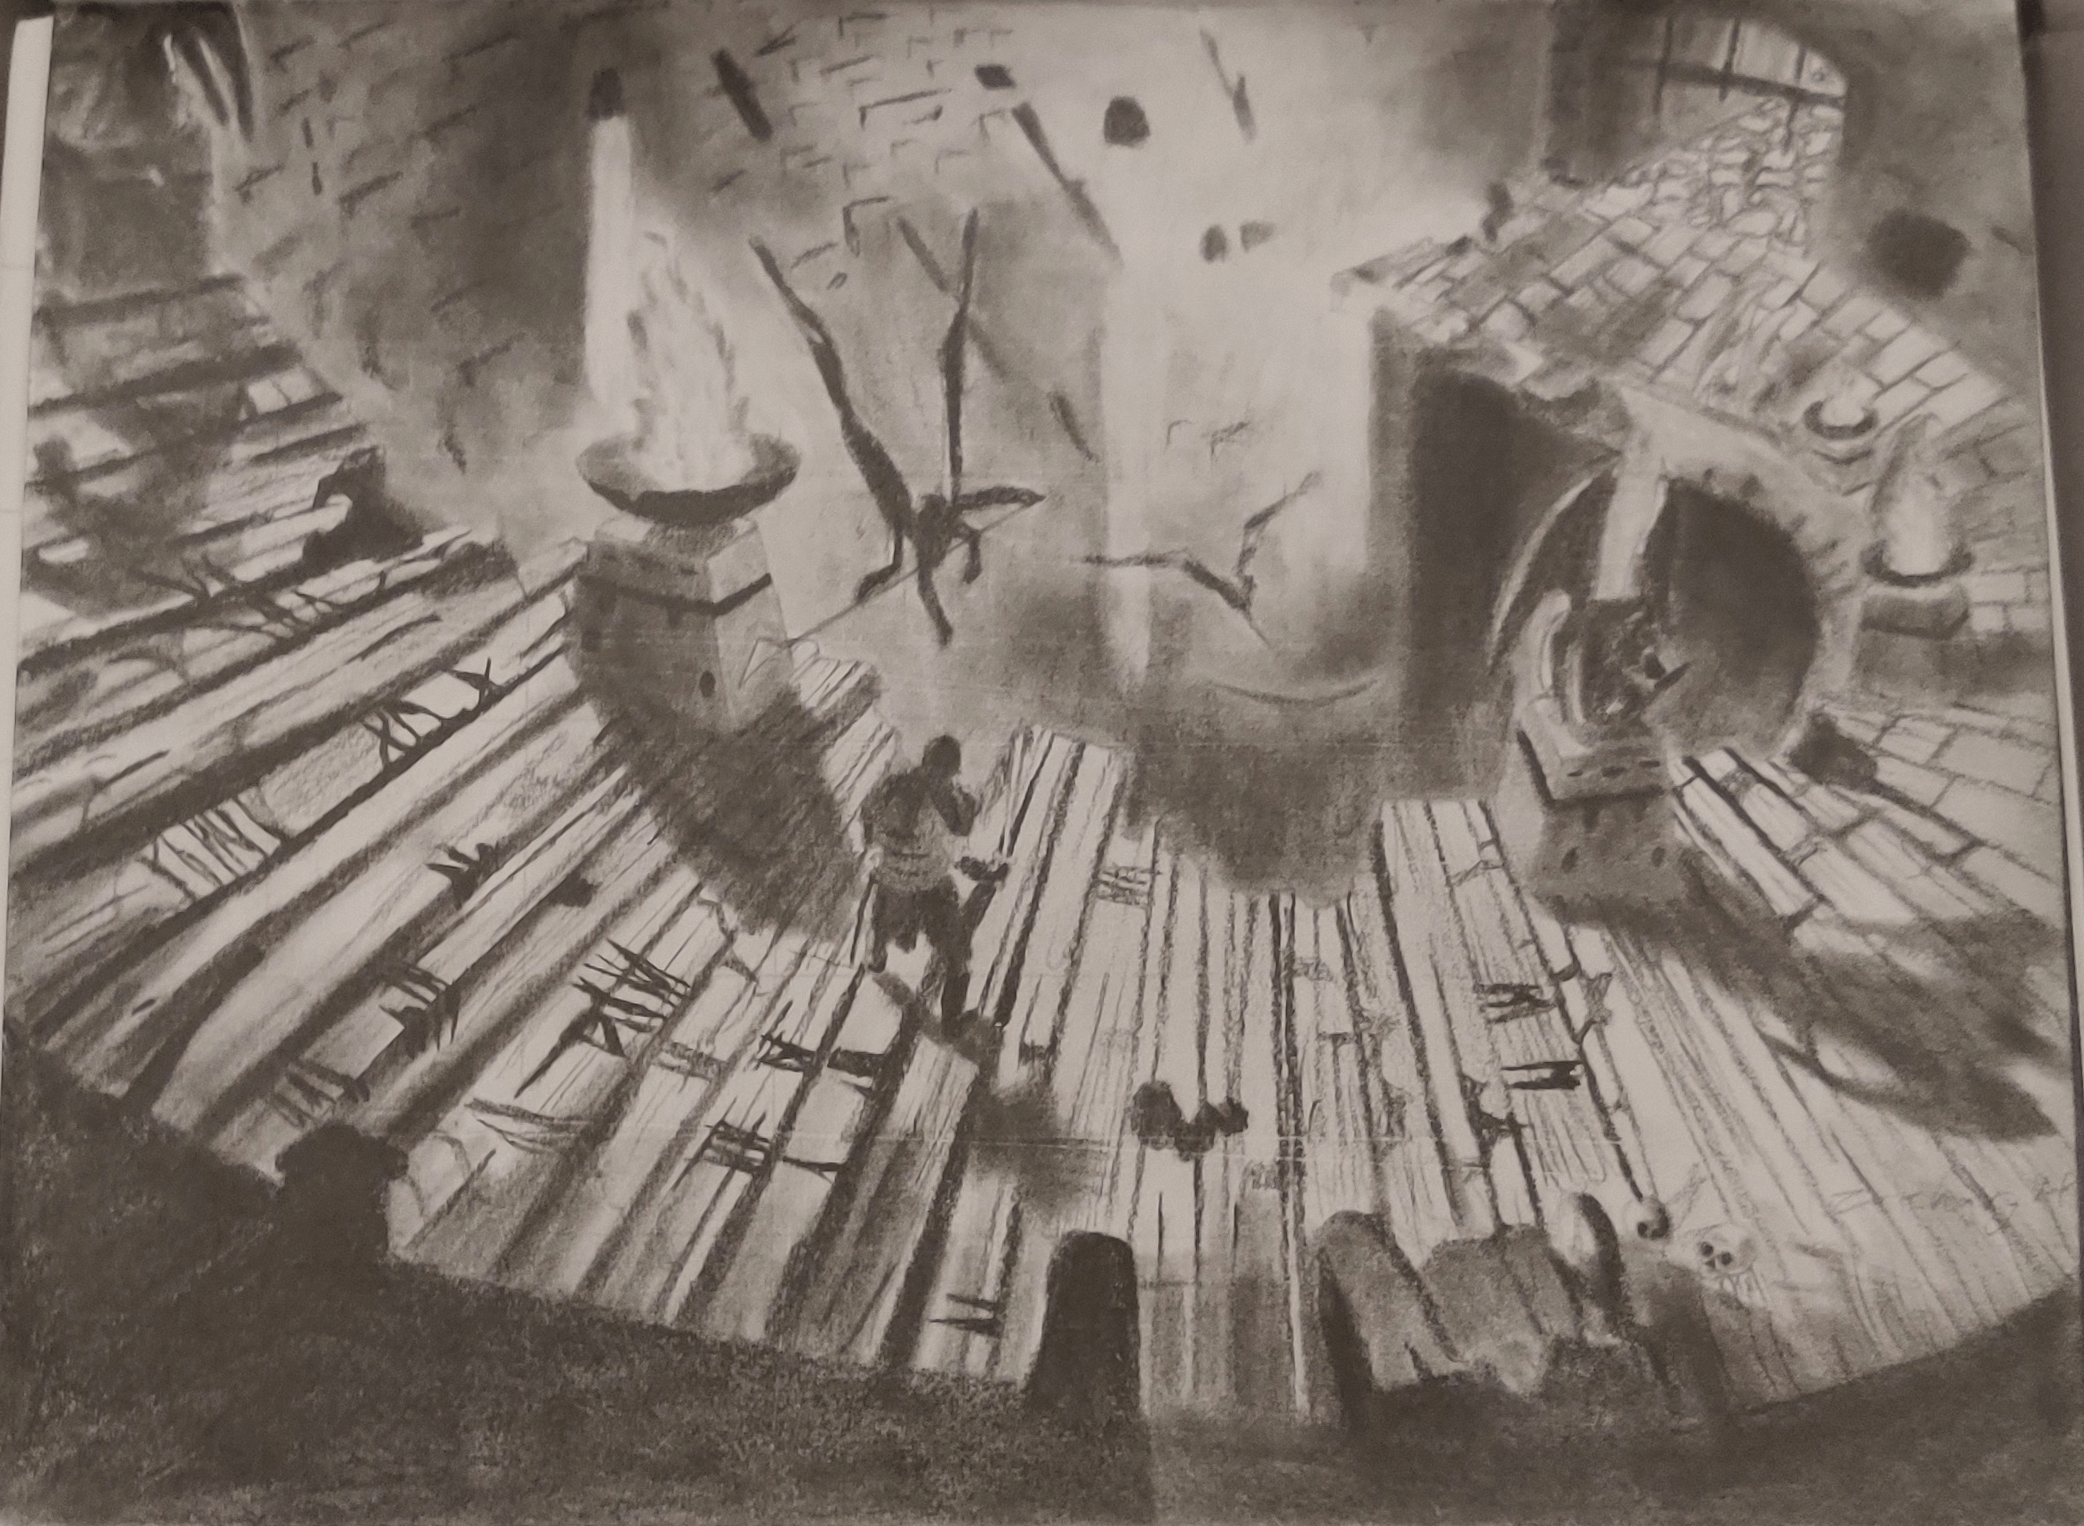 A pencil drawing of an explorer descending stairs into a crypt.